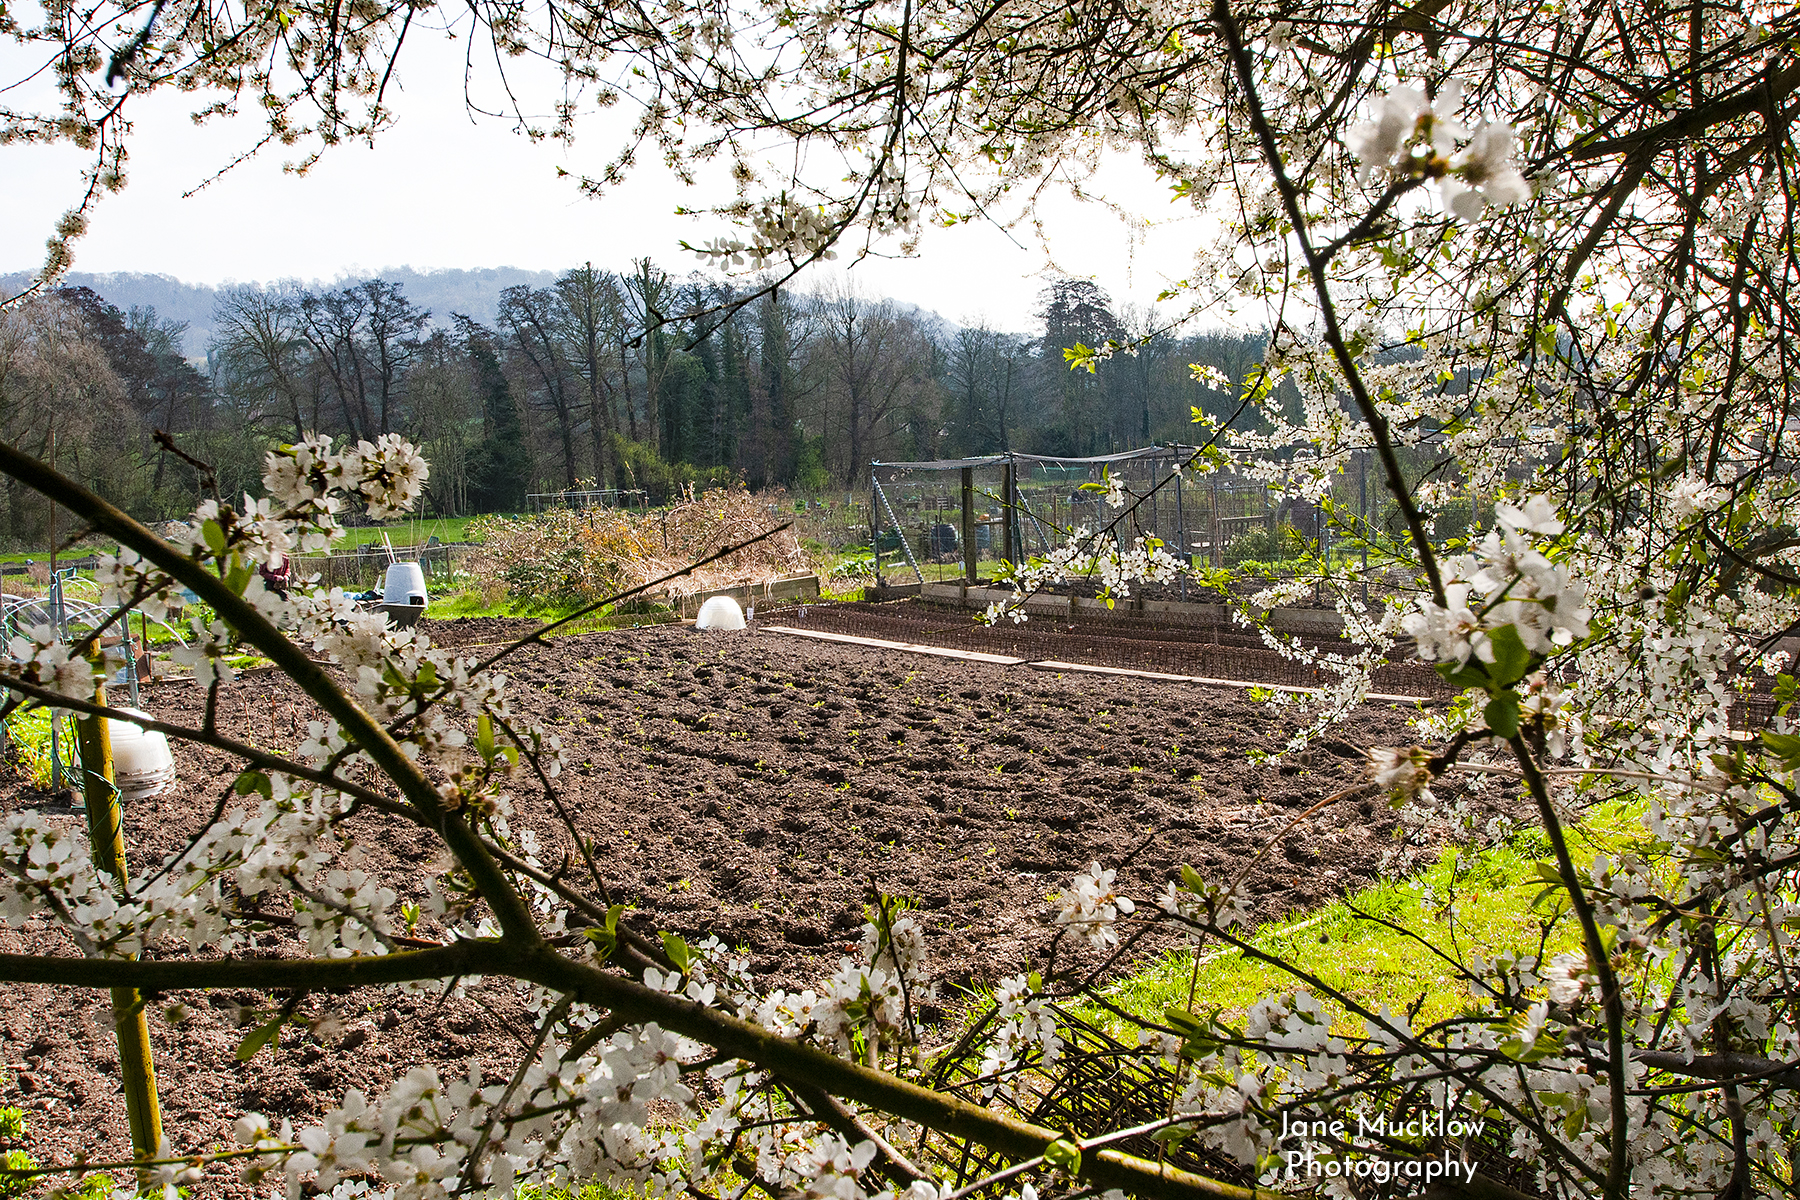 Photo of the Shoreham Allotments with blossom, by Jane Mucklow